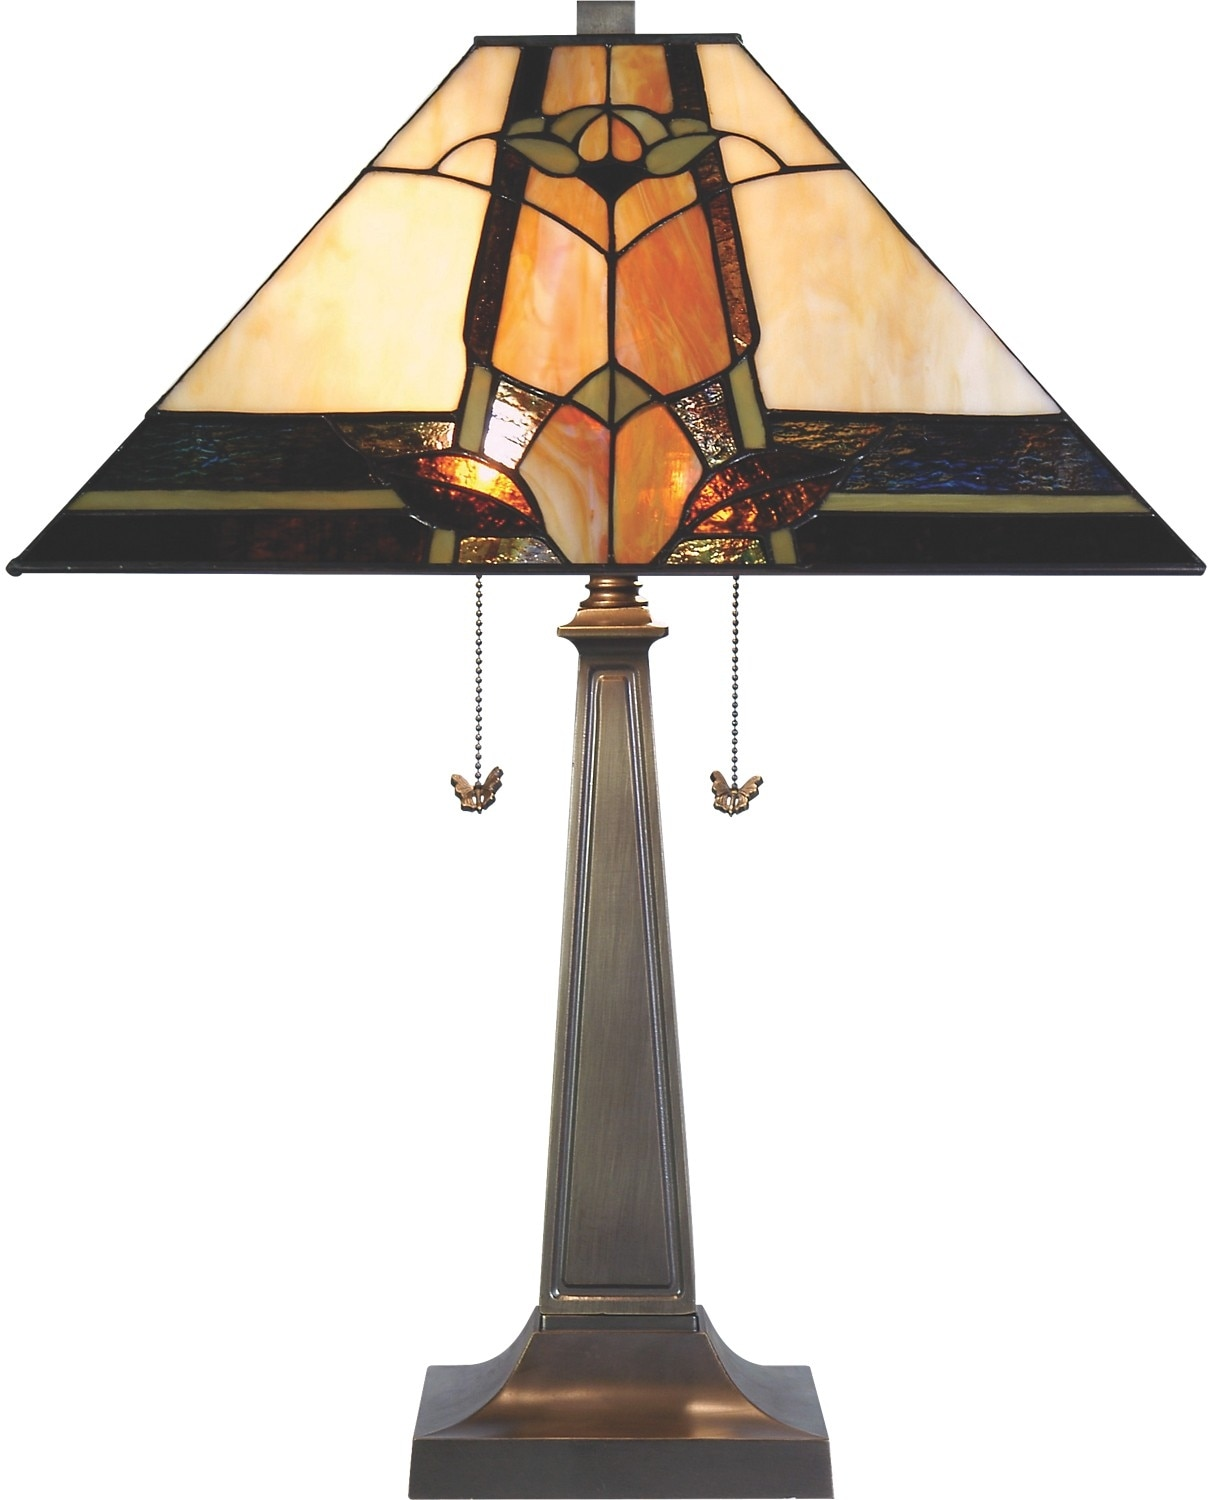 Home Accessories - Marlow Table Lamp with Stained Glass Shade